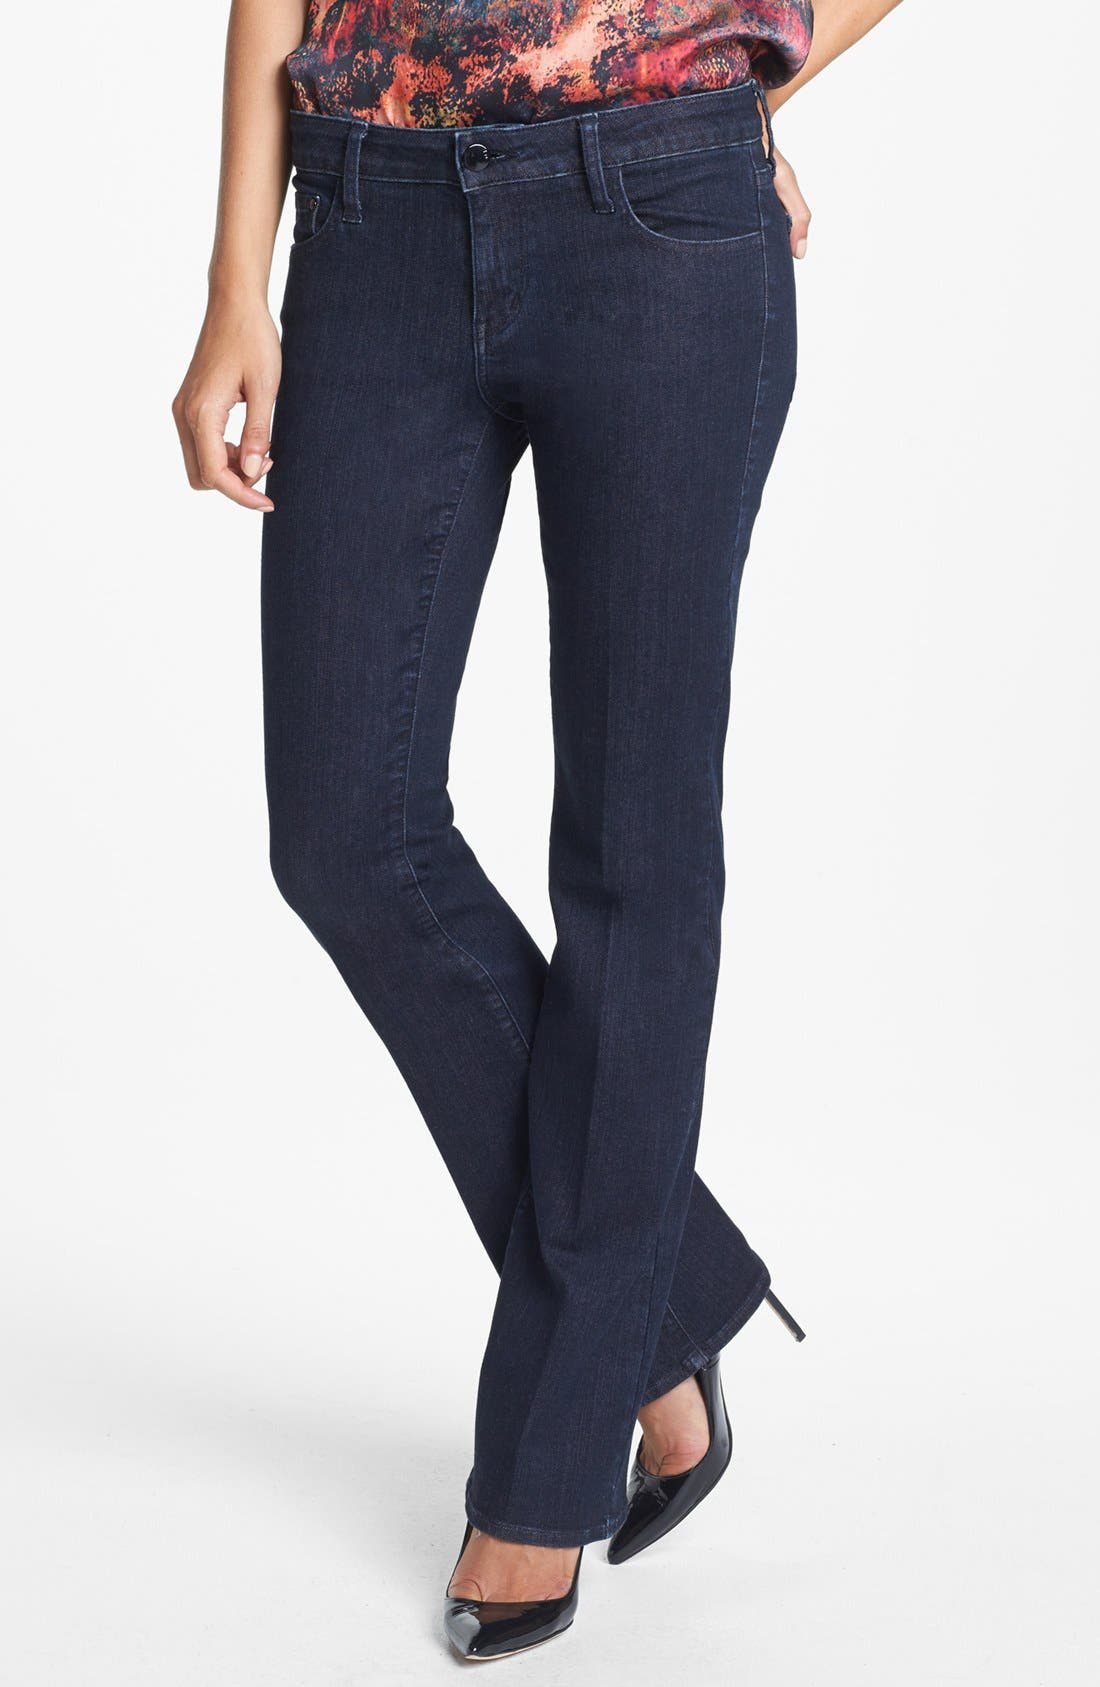 Main Image - !iT Collective 'Jolie' Slim Bootcut Jeans (A Star Is Born)